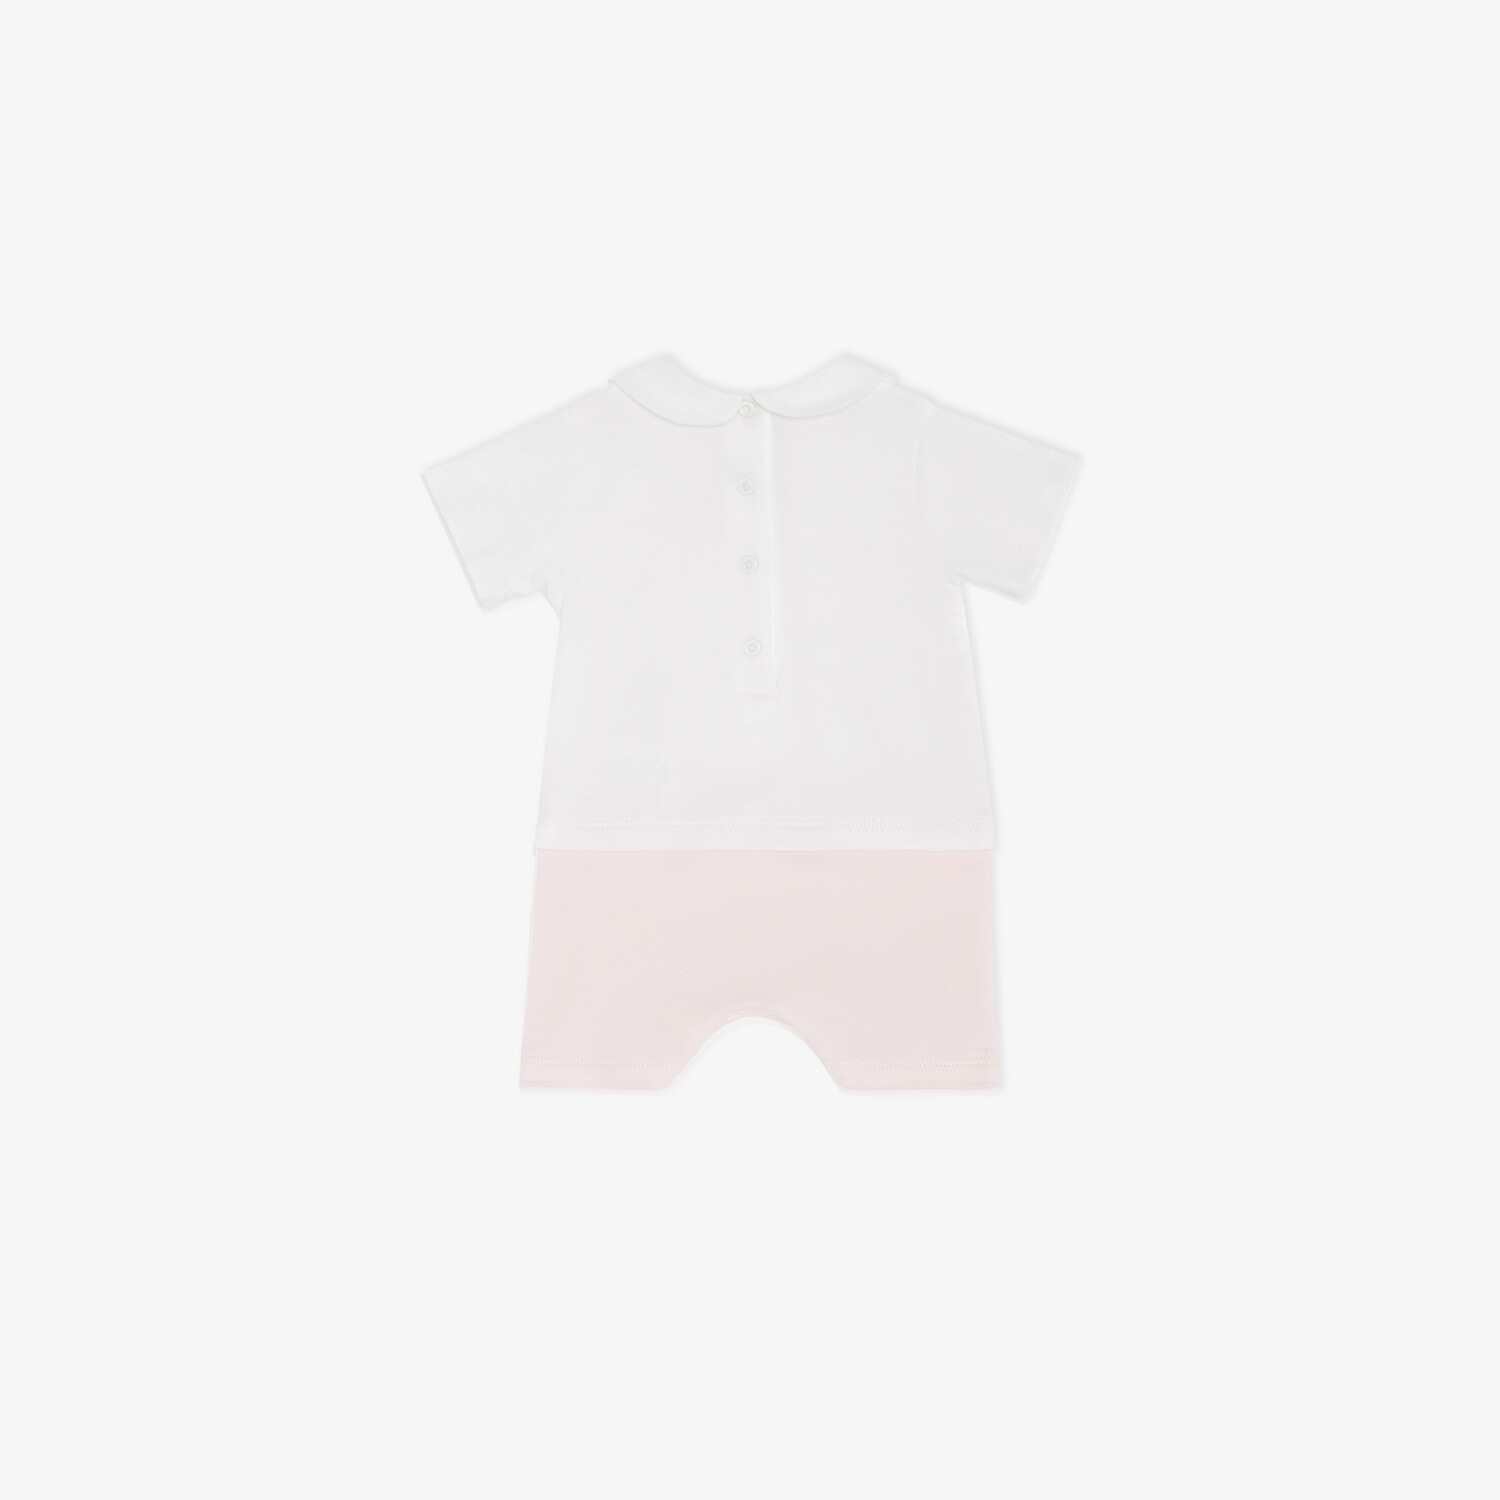 FENDI BABY PLAYSUIT - Jersey baby playsuit - view 2 detail